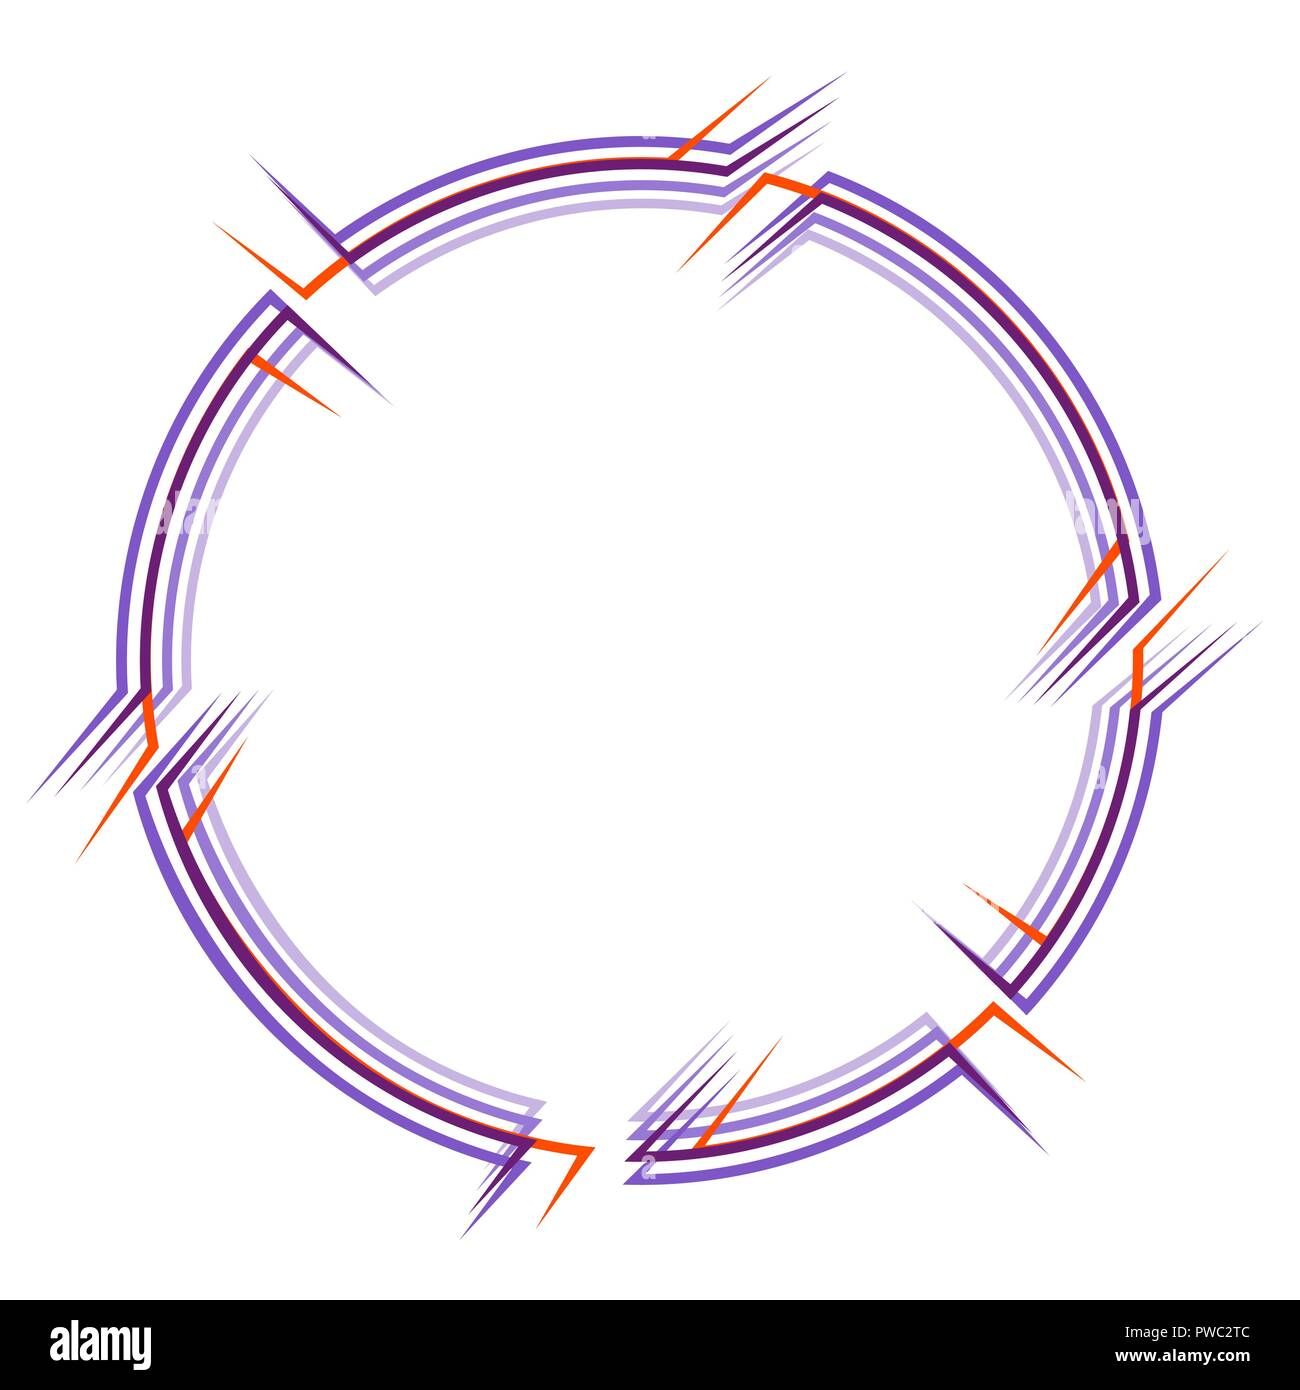 round frame with breaks of contours of several elements, glitch - Stock Vector